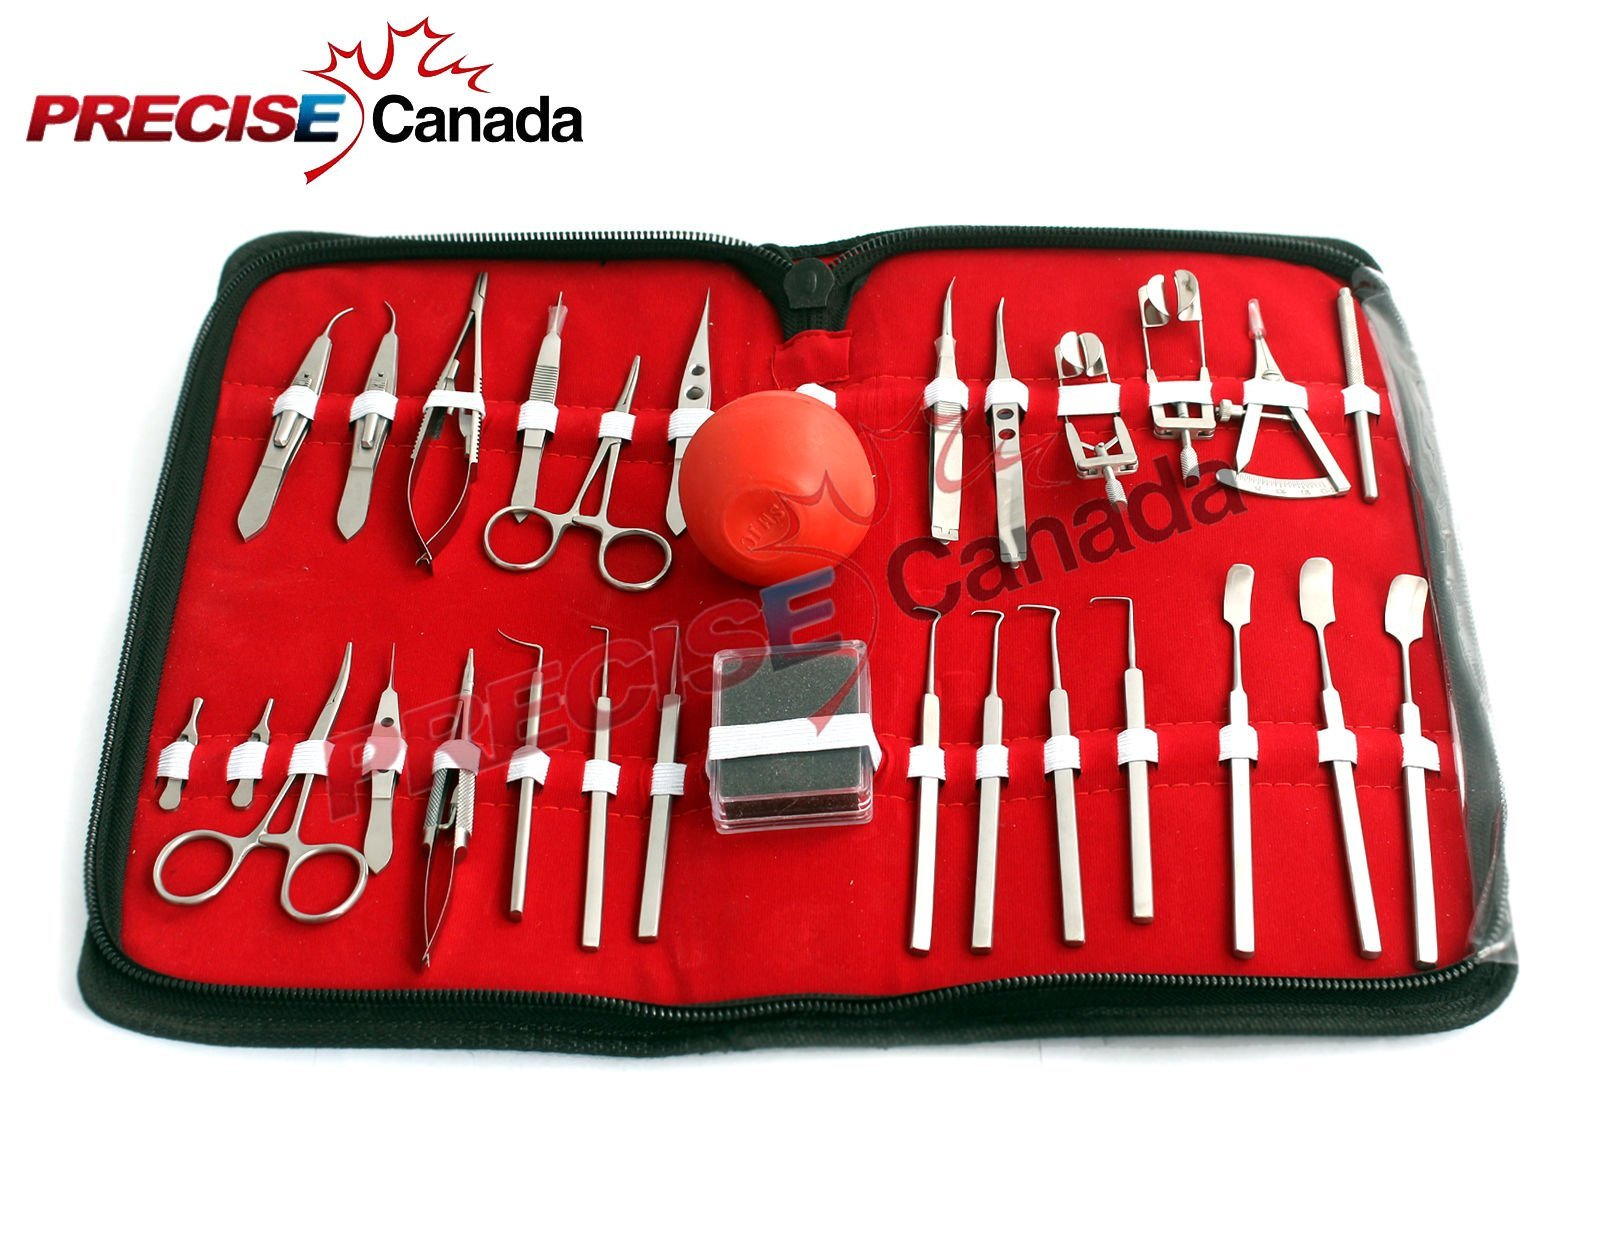 PRECISE CANADA SCISSORS: NEW 27 PIECES O.R GRADE STRABISMUS EYE OPHTHALMIC SET KIT EYE INSTRUMENTS STAINLESS STEEL